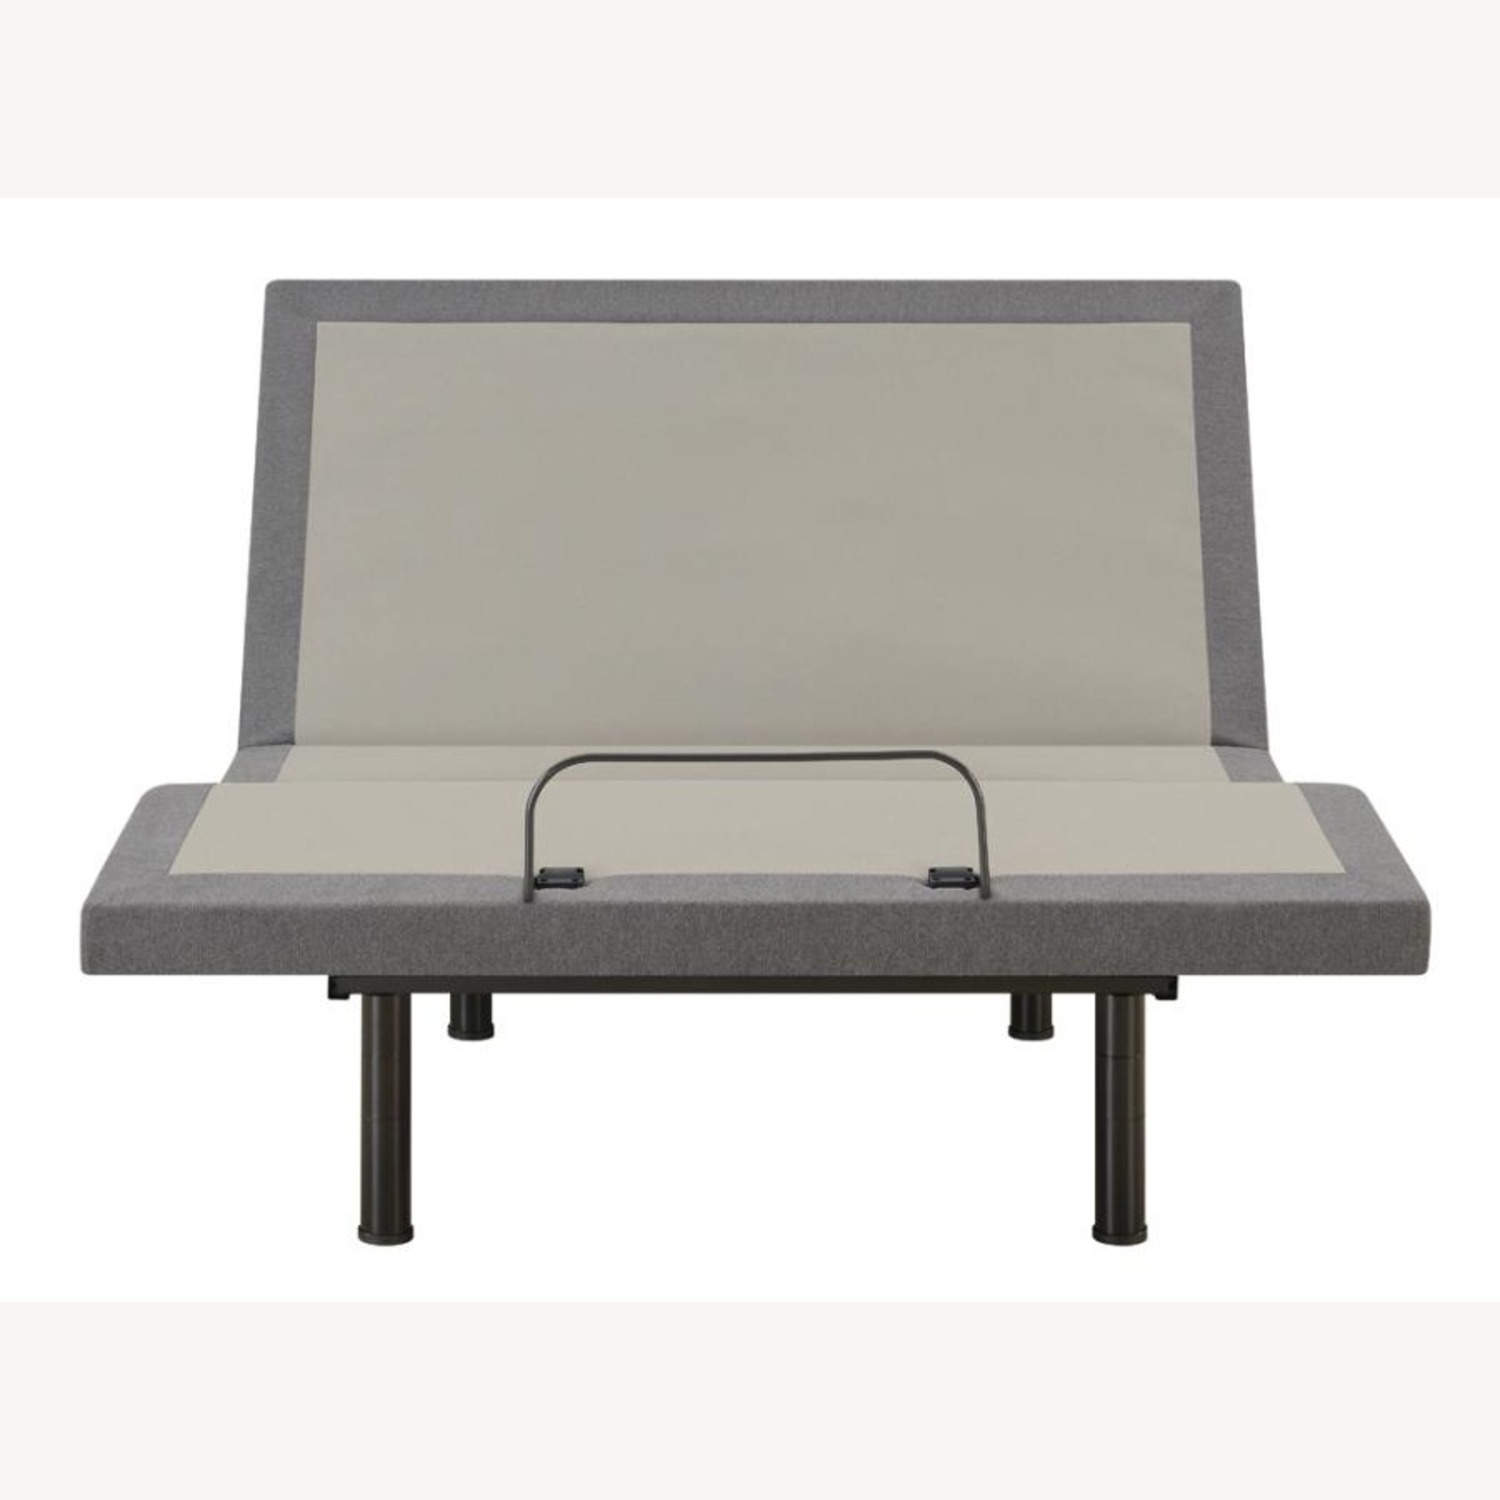 Queen Adjustable Bed Base In Grey Fabric Finish - image-2